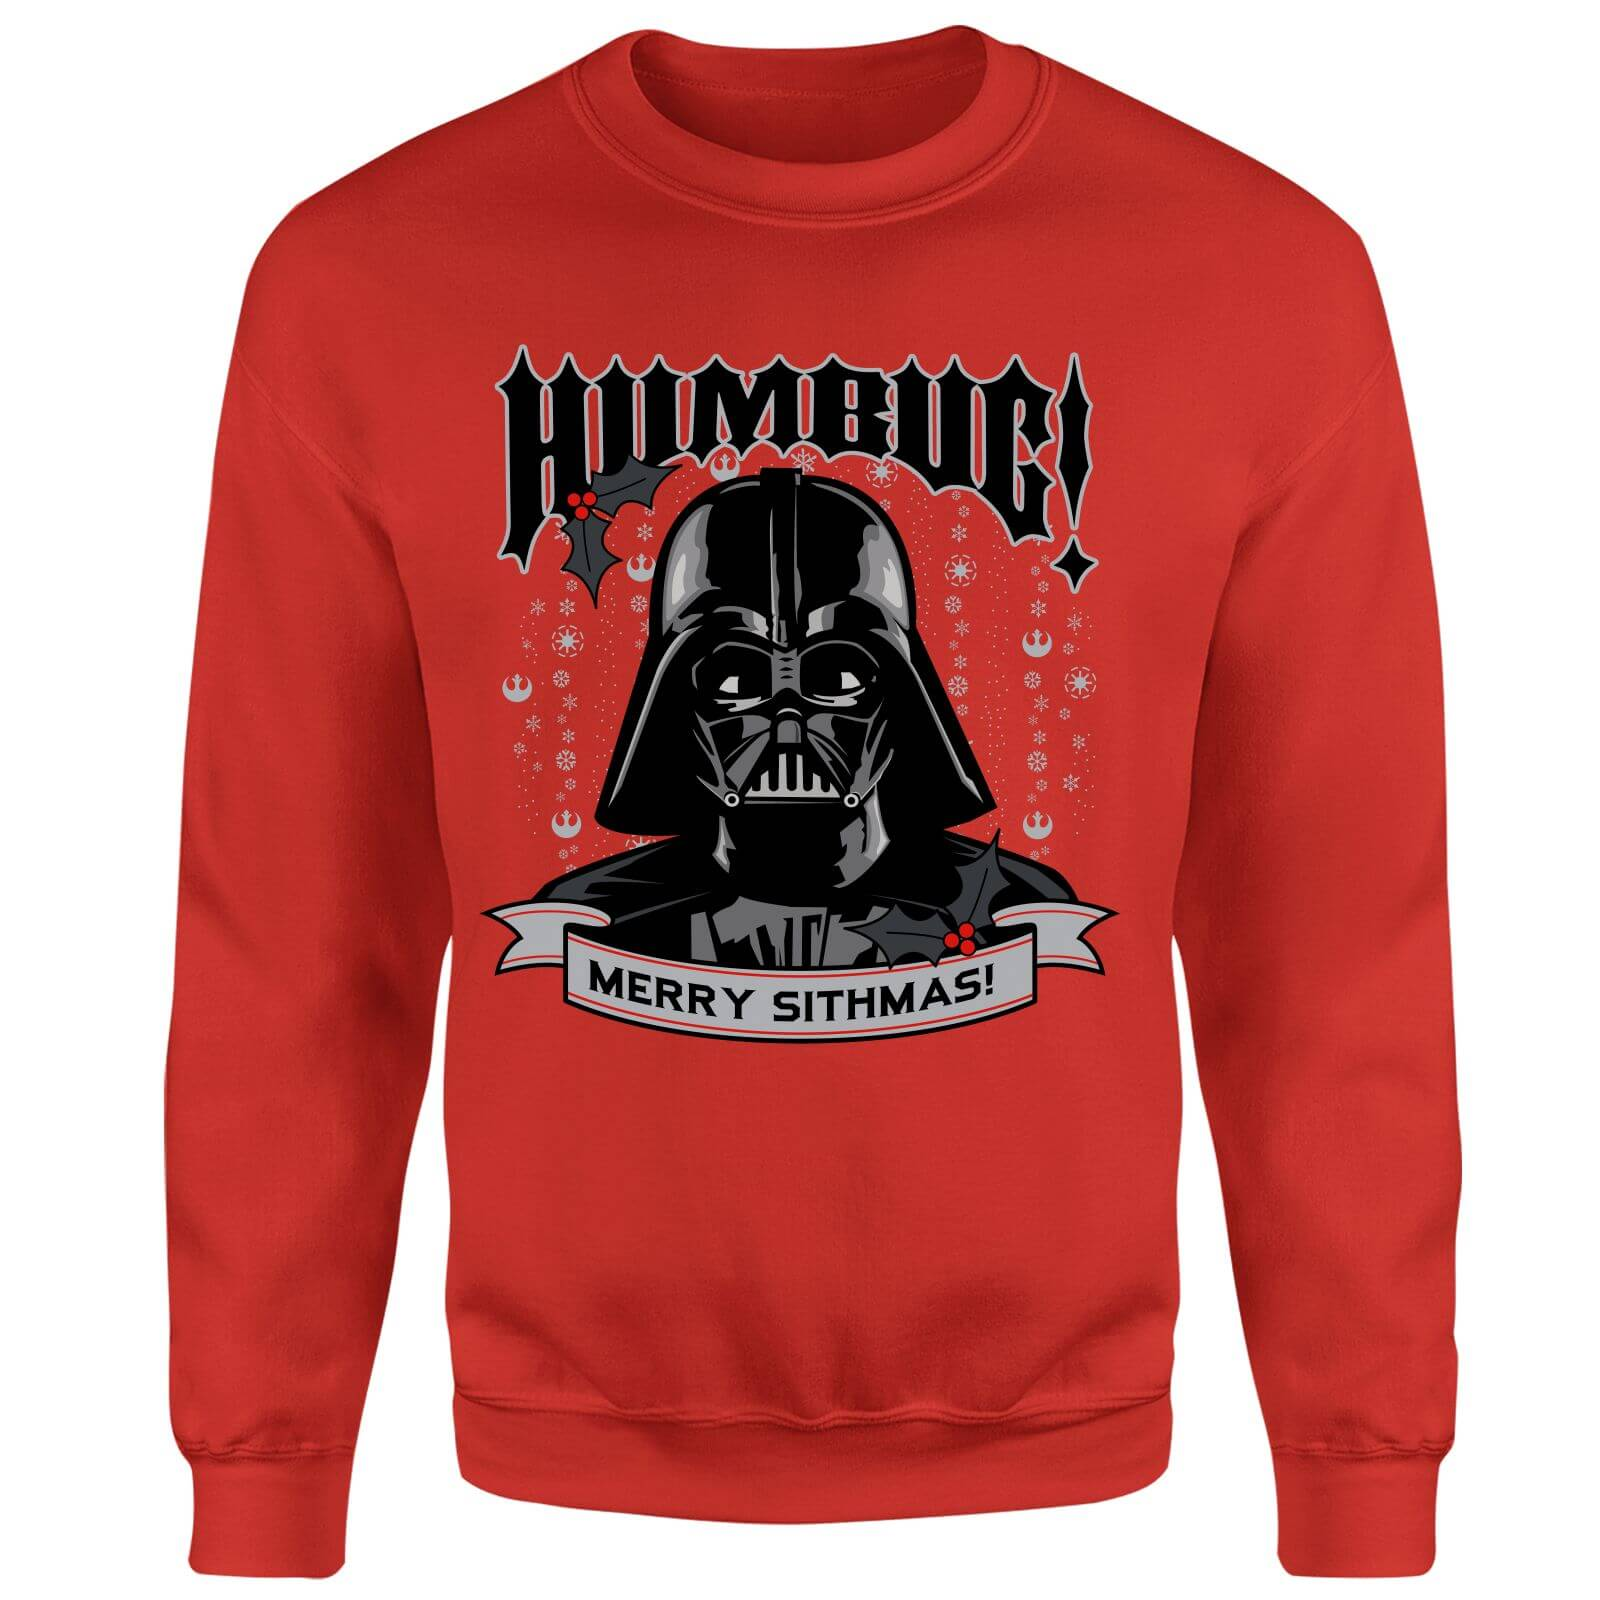 Star Wars Darth Vader Merry Sithmas Red Christmas Sweatshirt